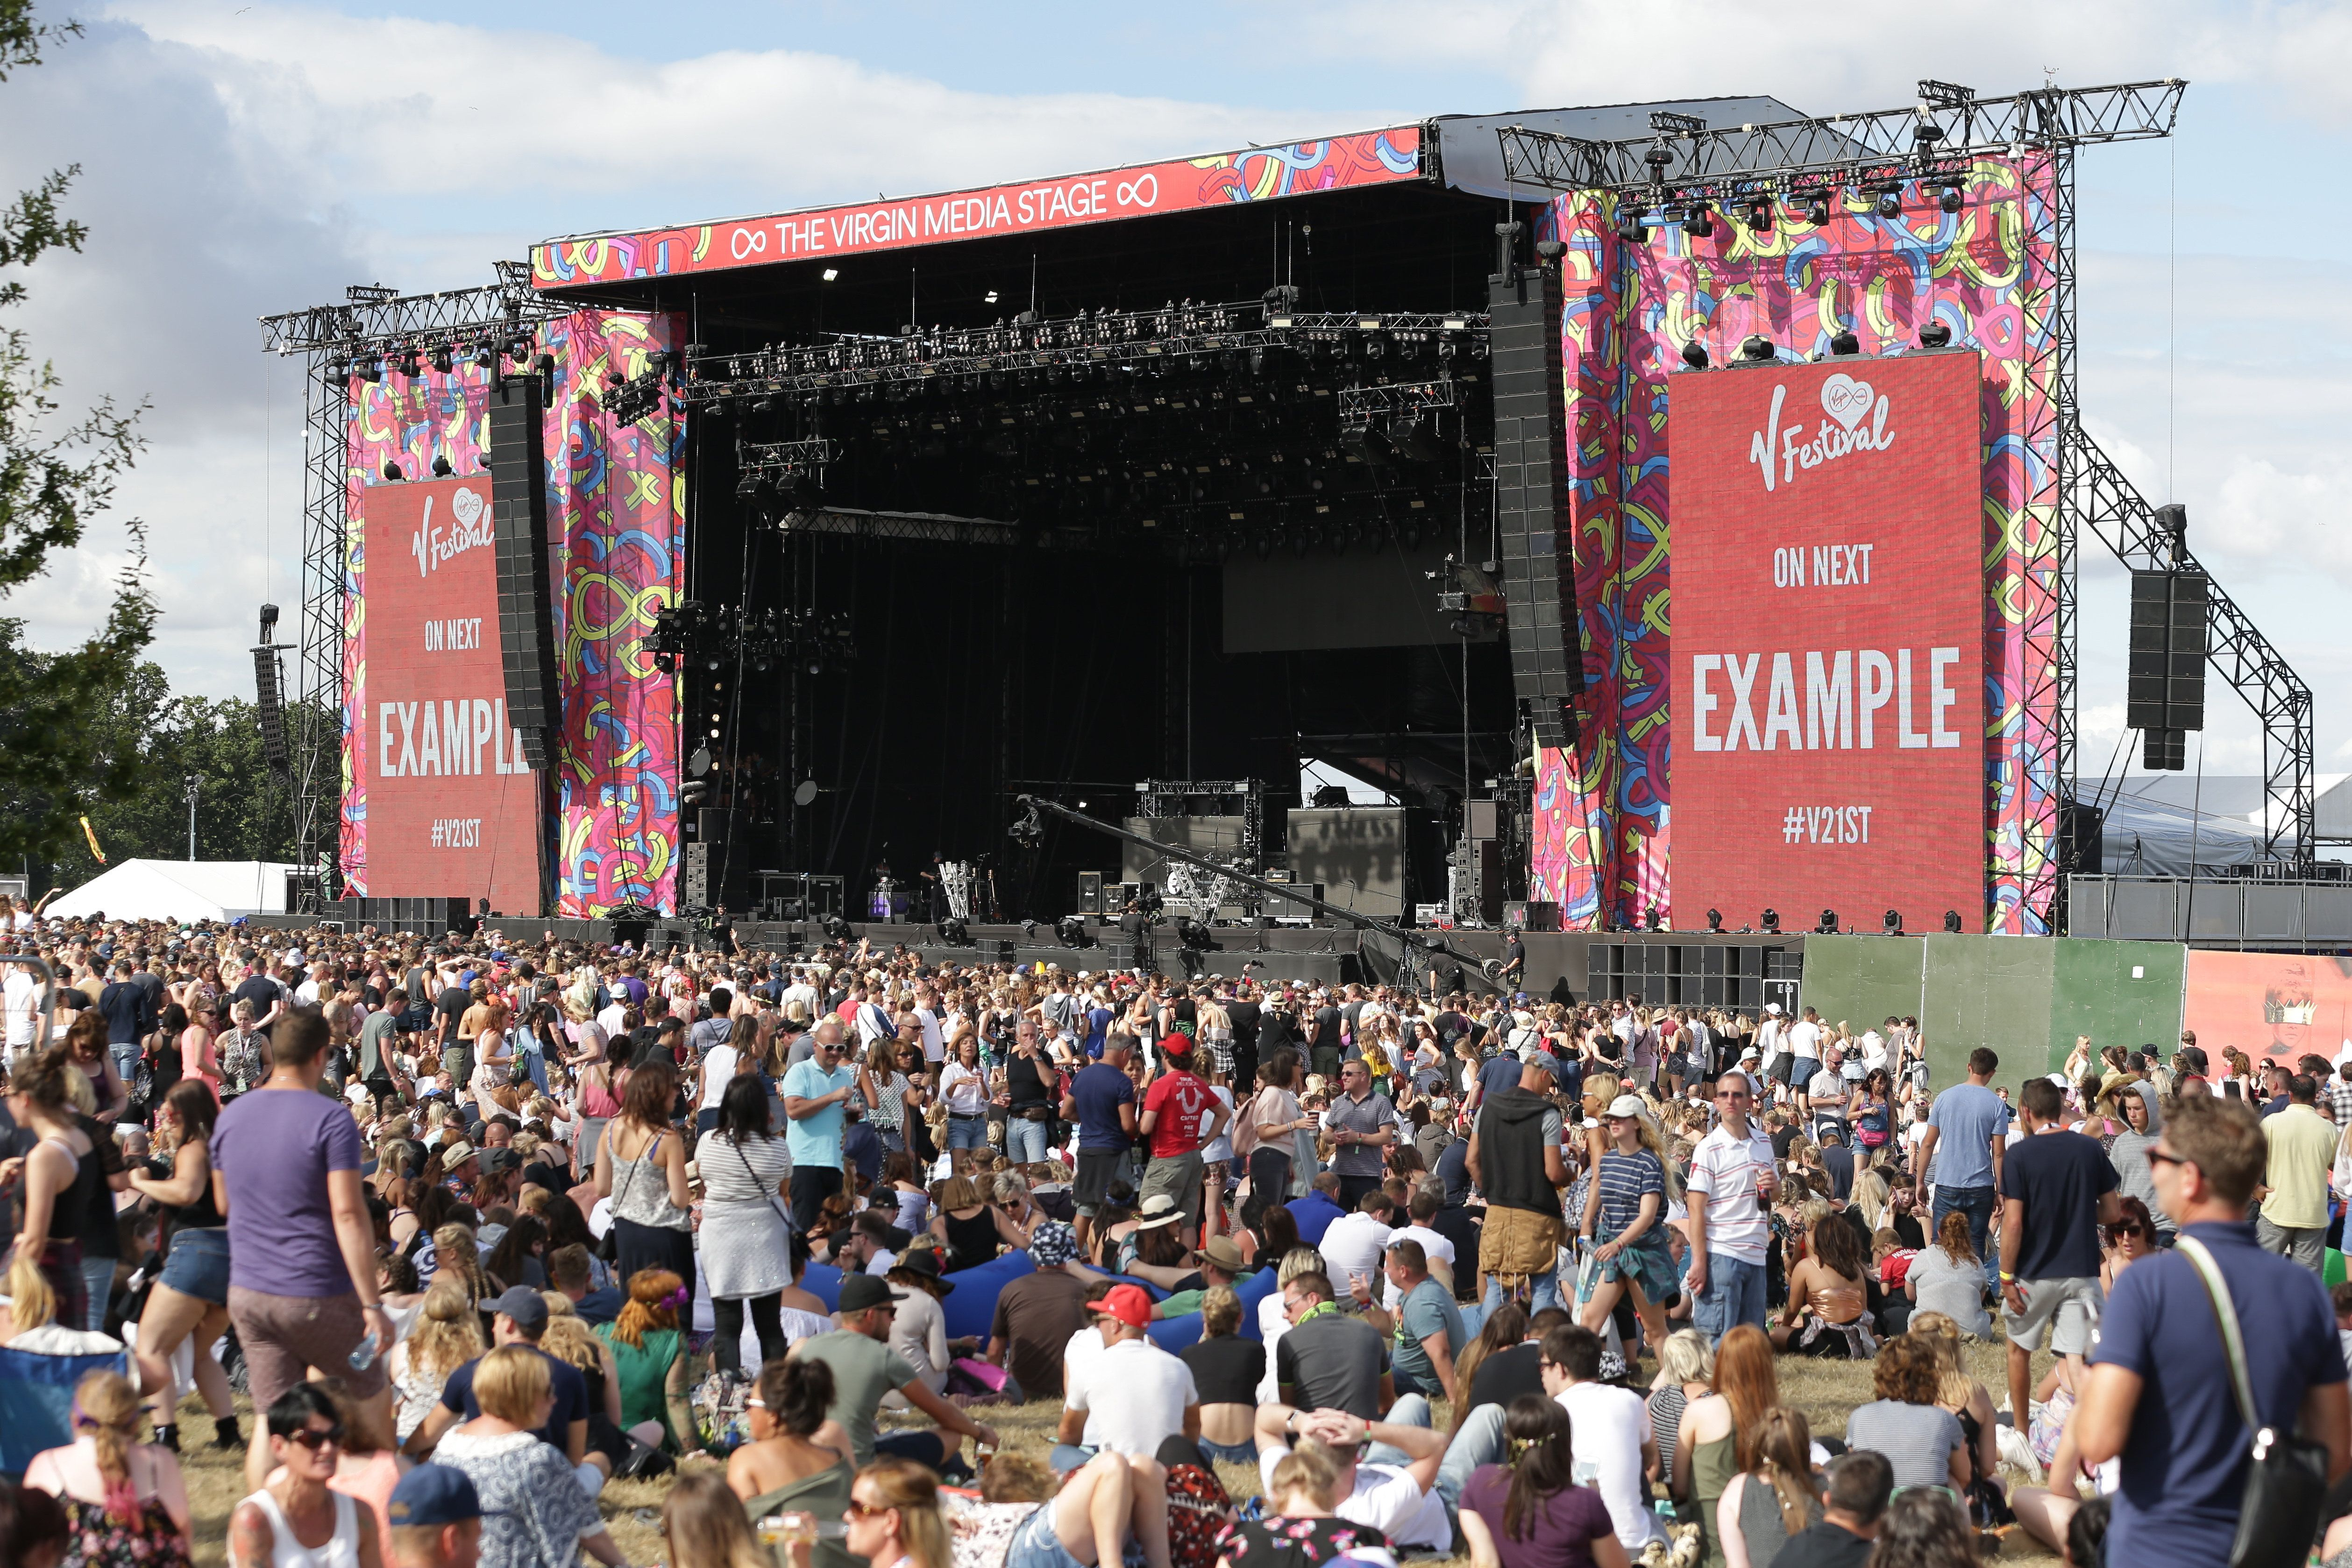 Huge V Fest and Bestival Changes Mean Next Summer Will Be Very Different For Festival-Goers